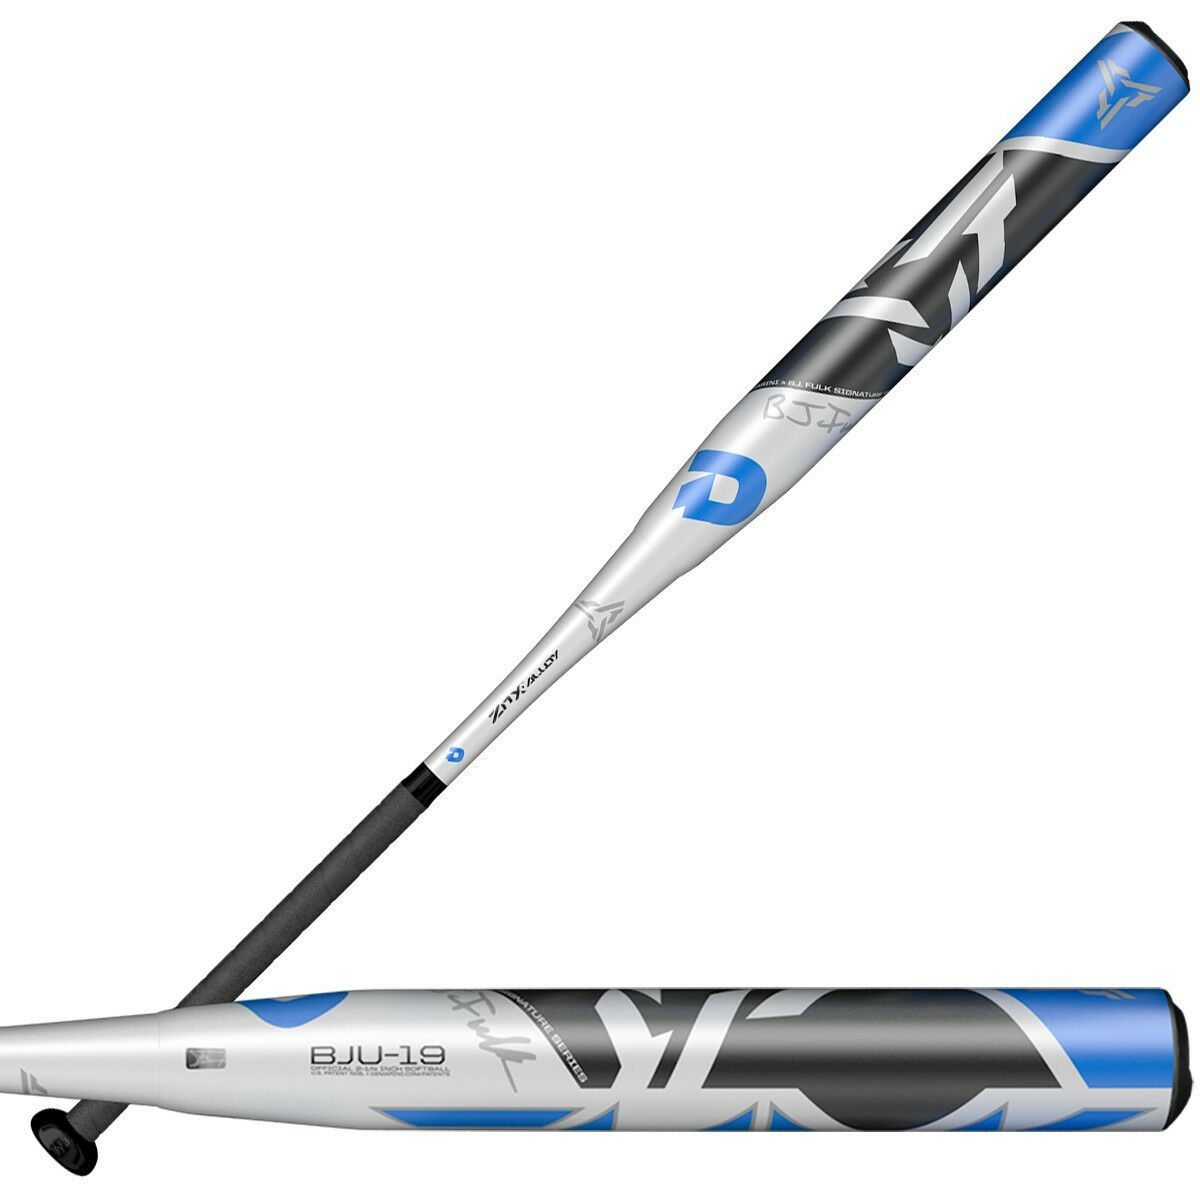 NEW 2019 DEMARINI BJ FULK USSSA COMPOSITE SLOW PITCH BAT 26 OR 27 OZ.